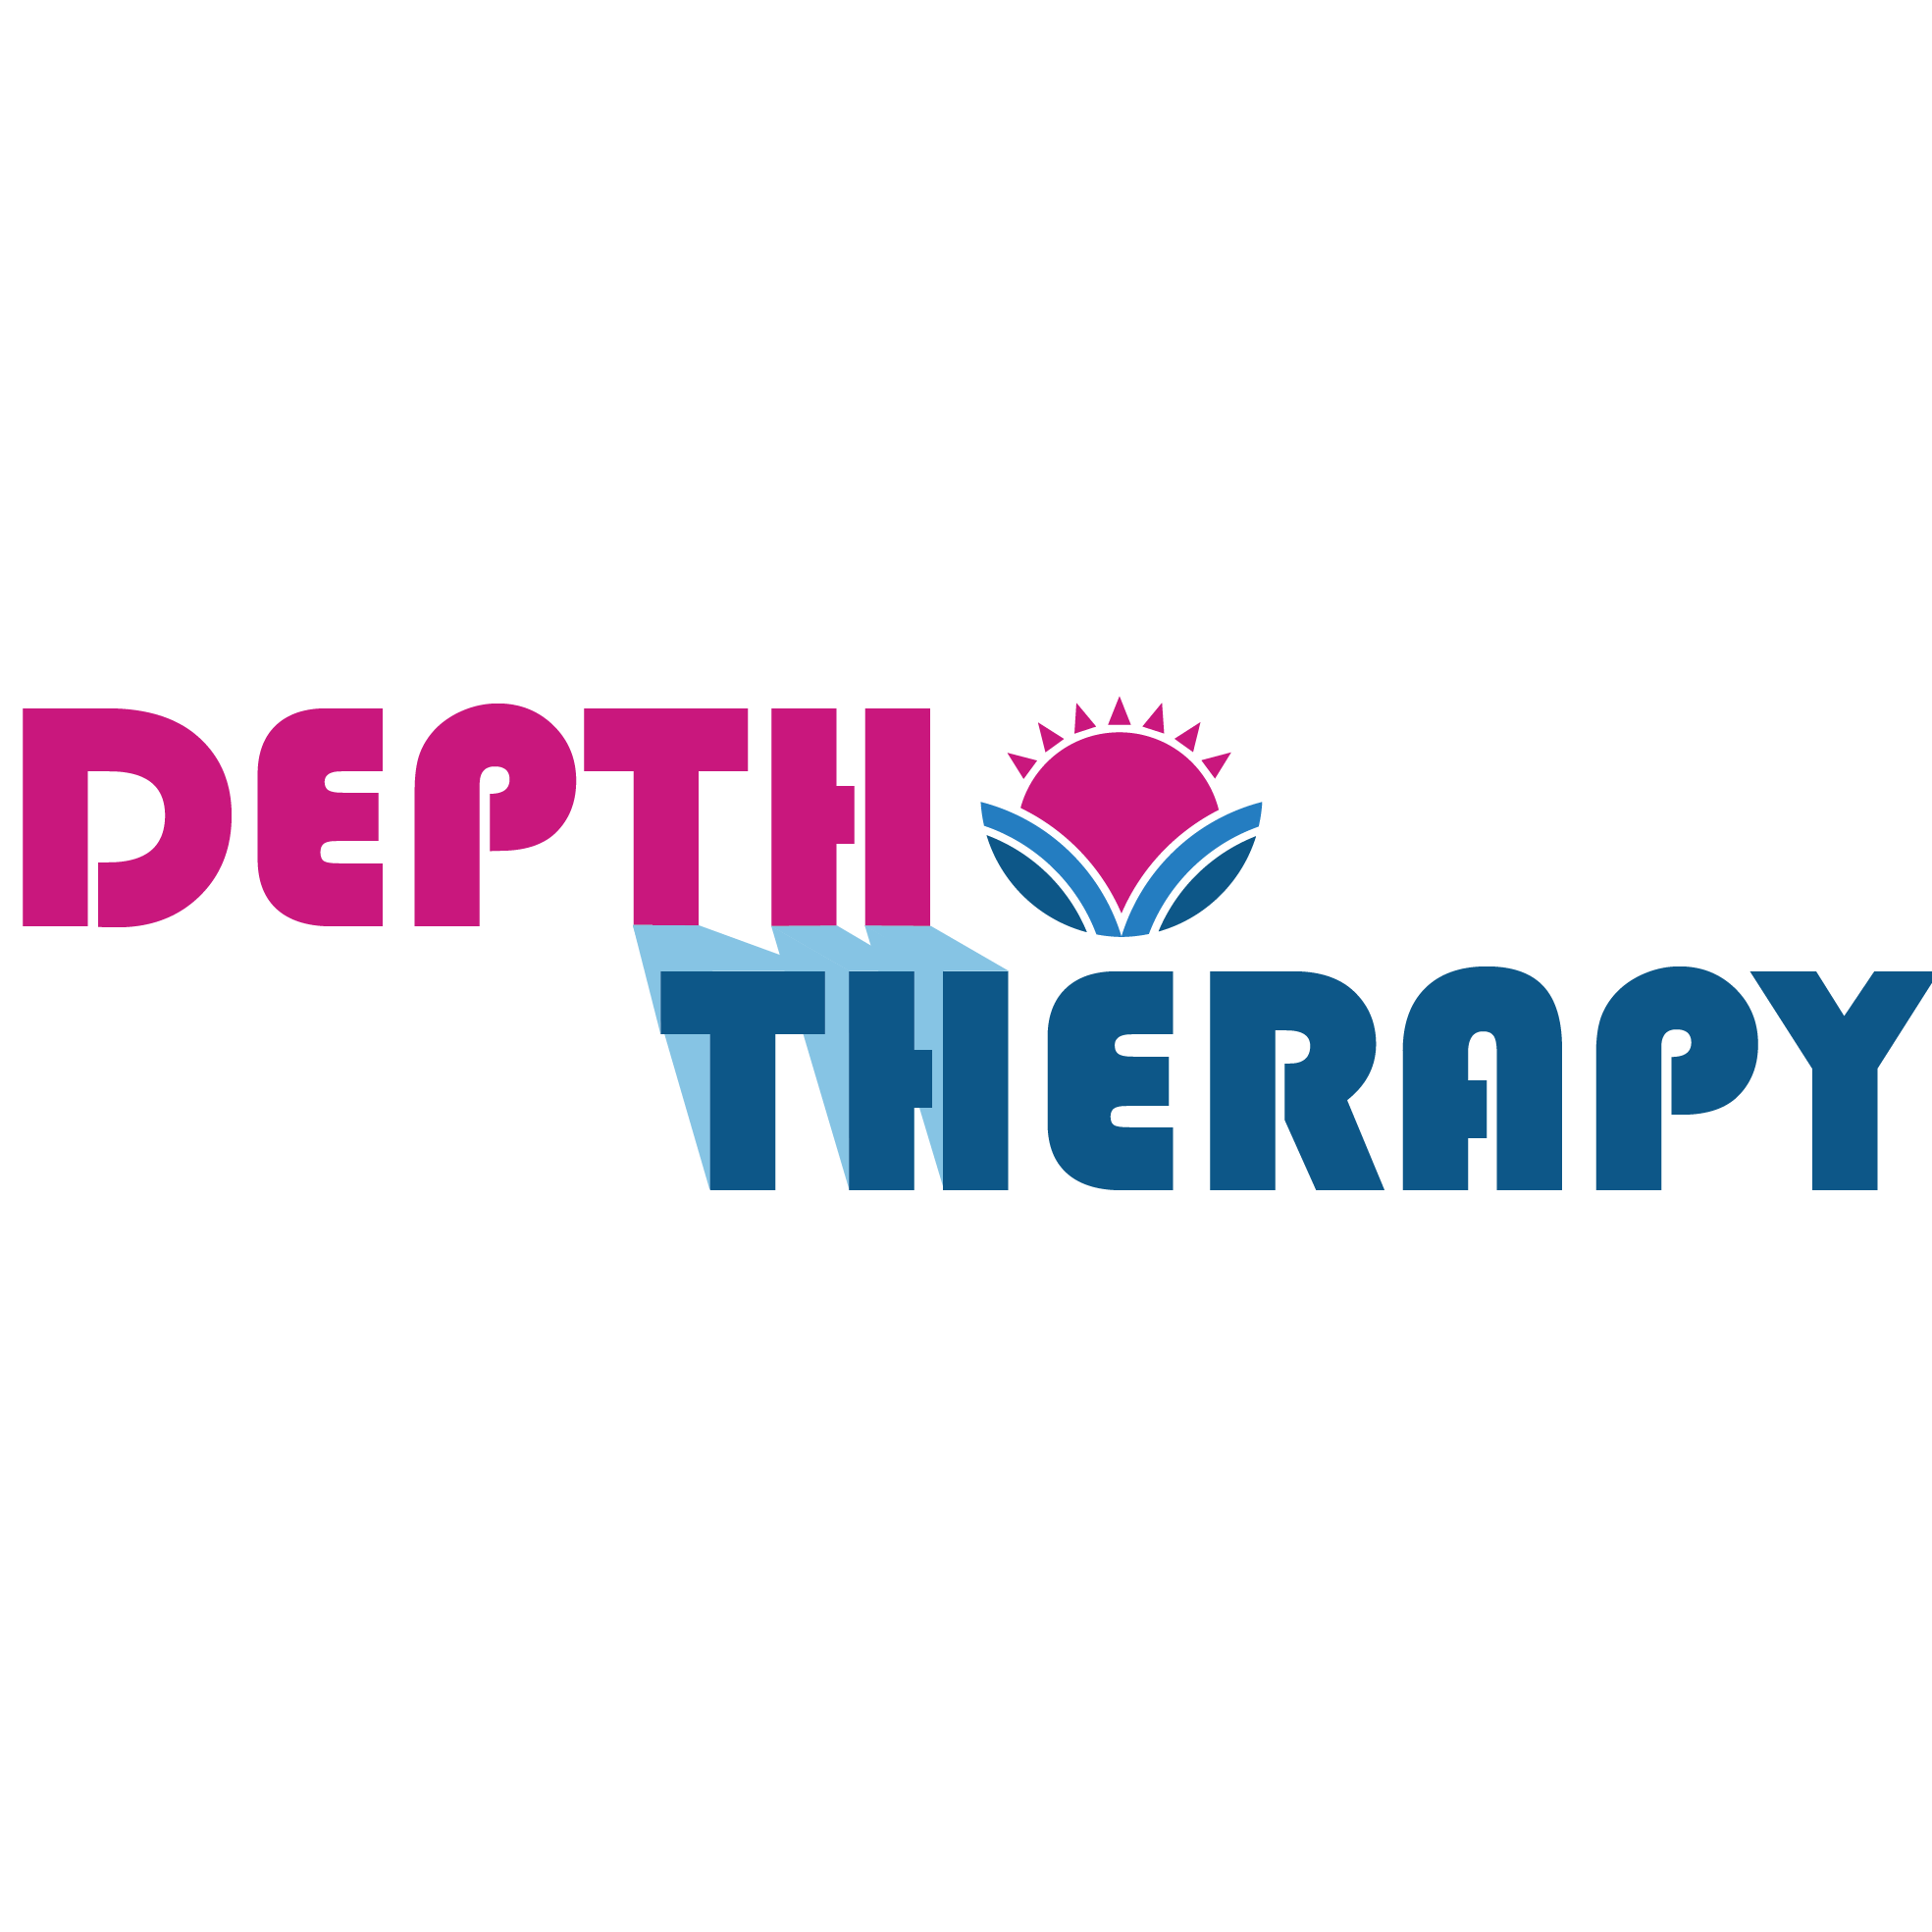 Deptherapy